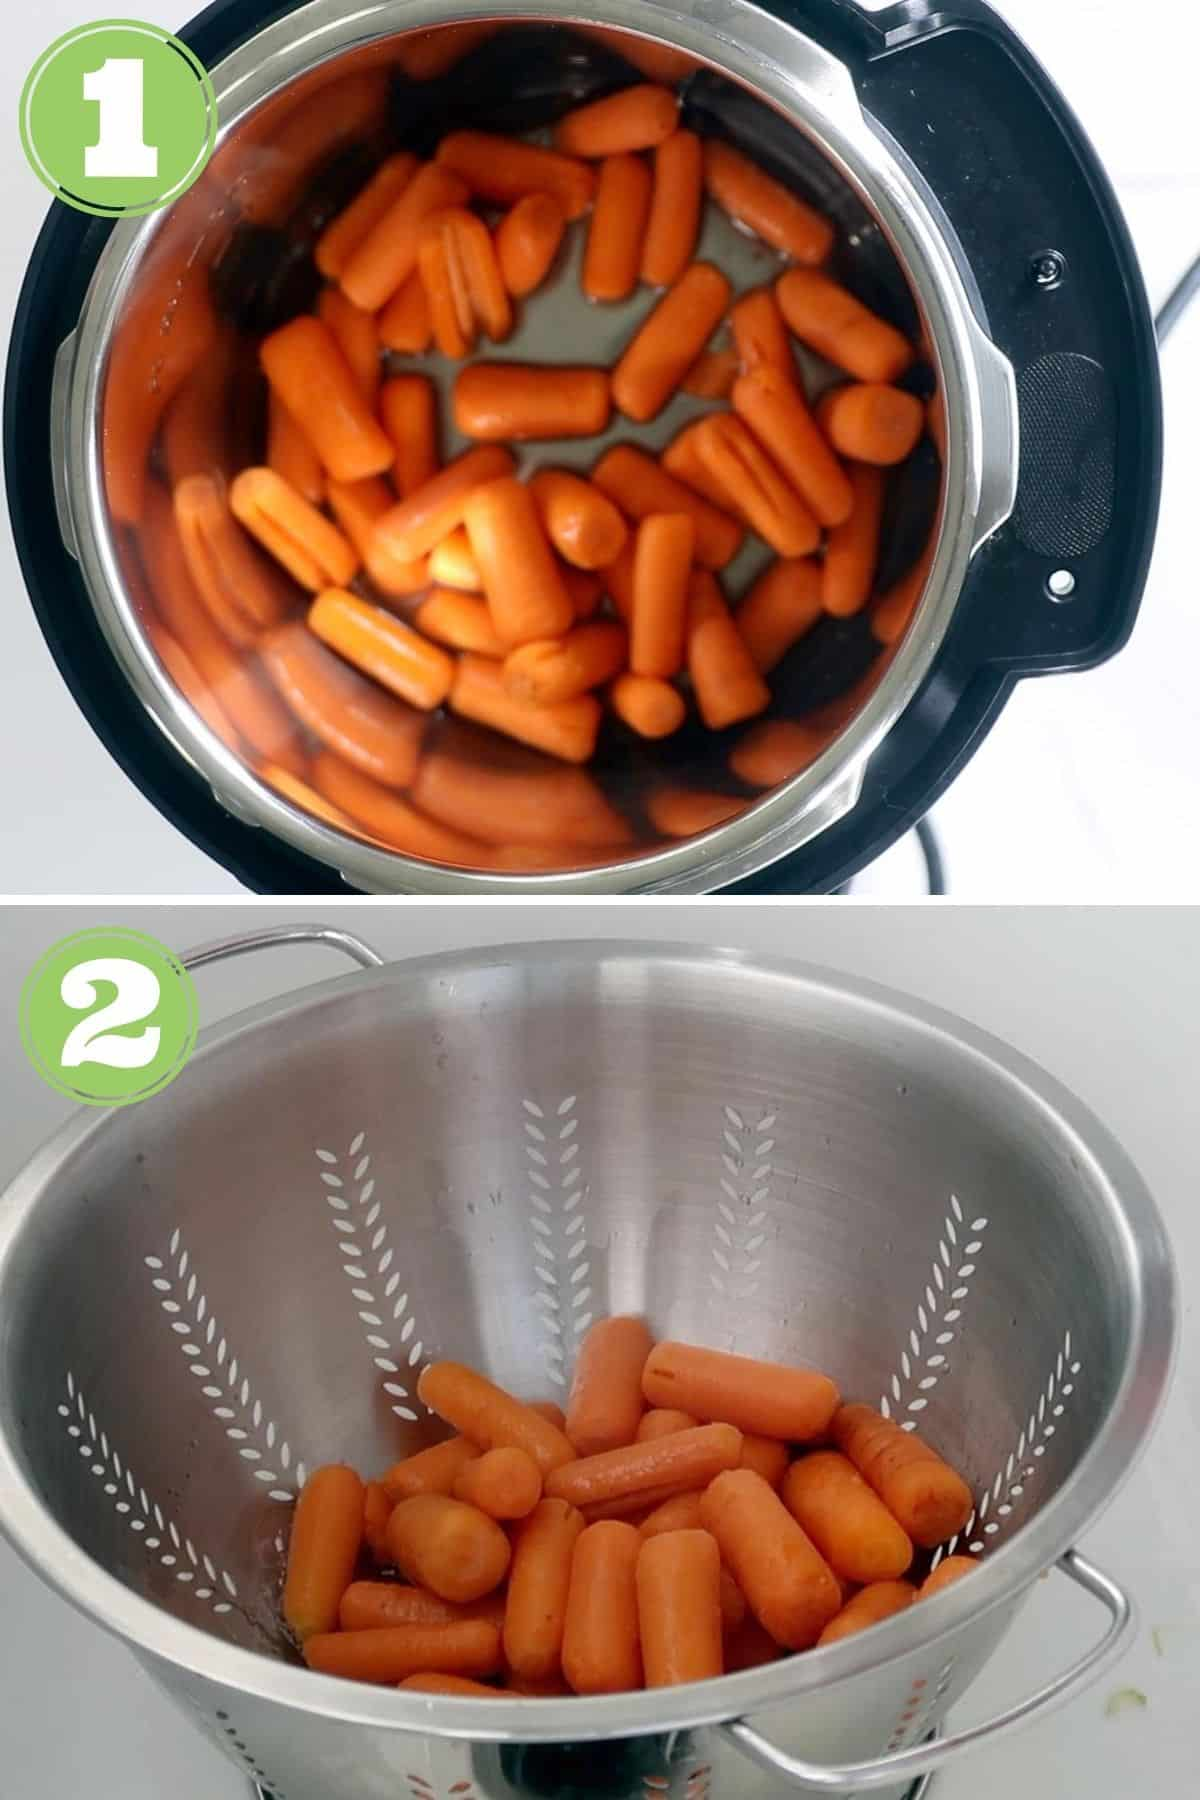 instant pot carrot process shots